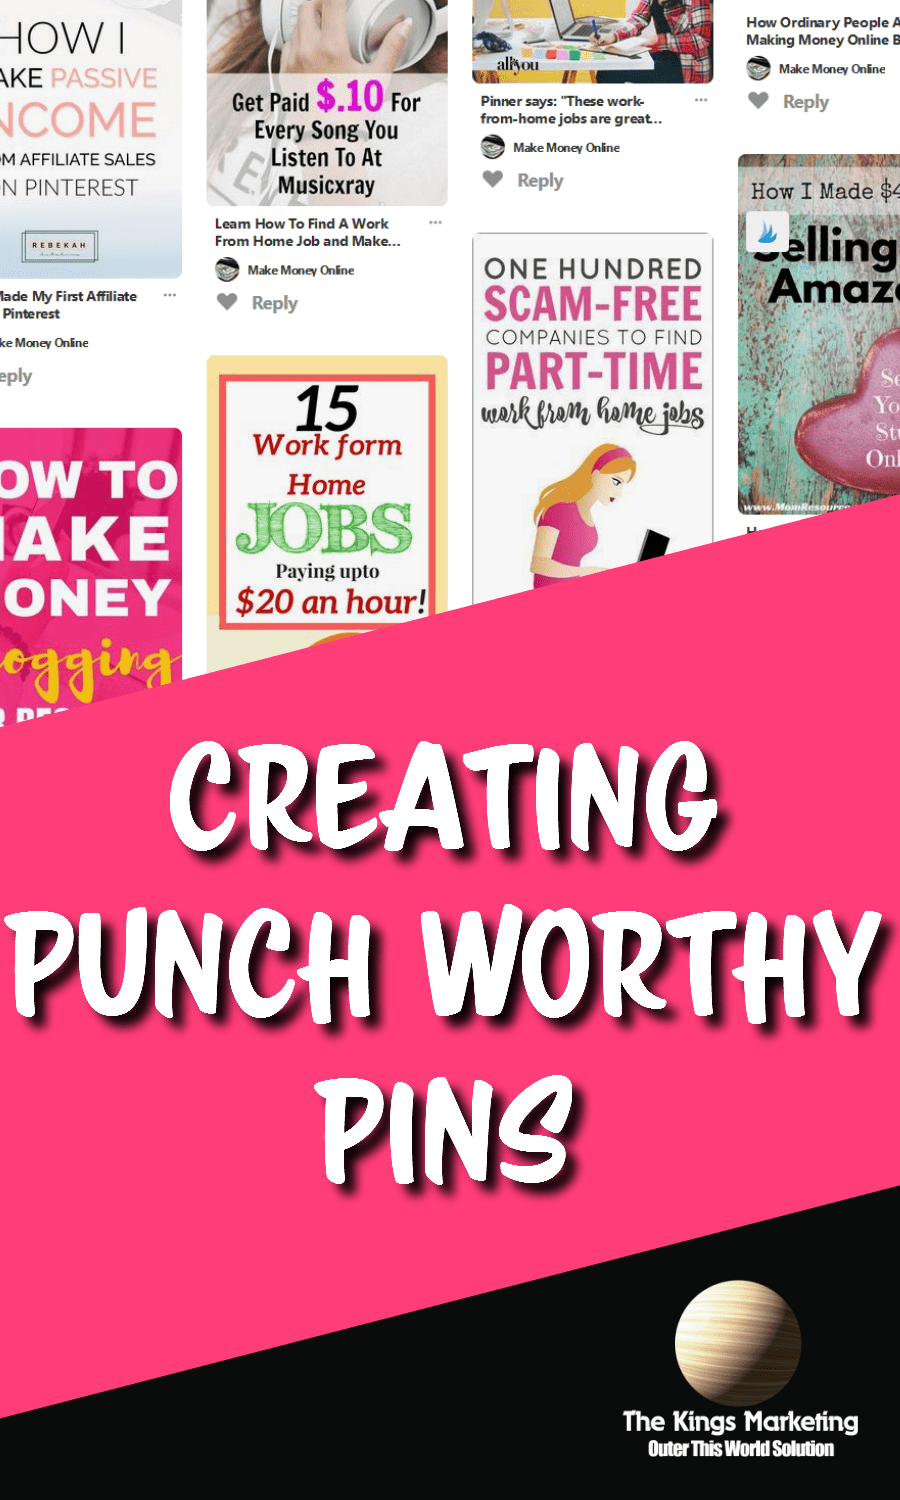 Creating Punch-Worthy Pins